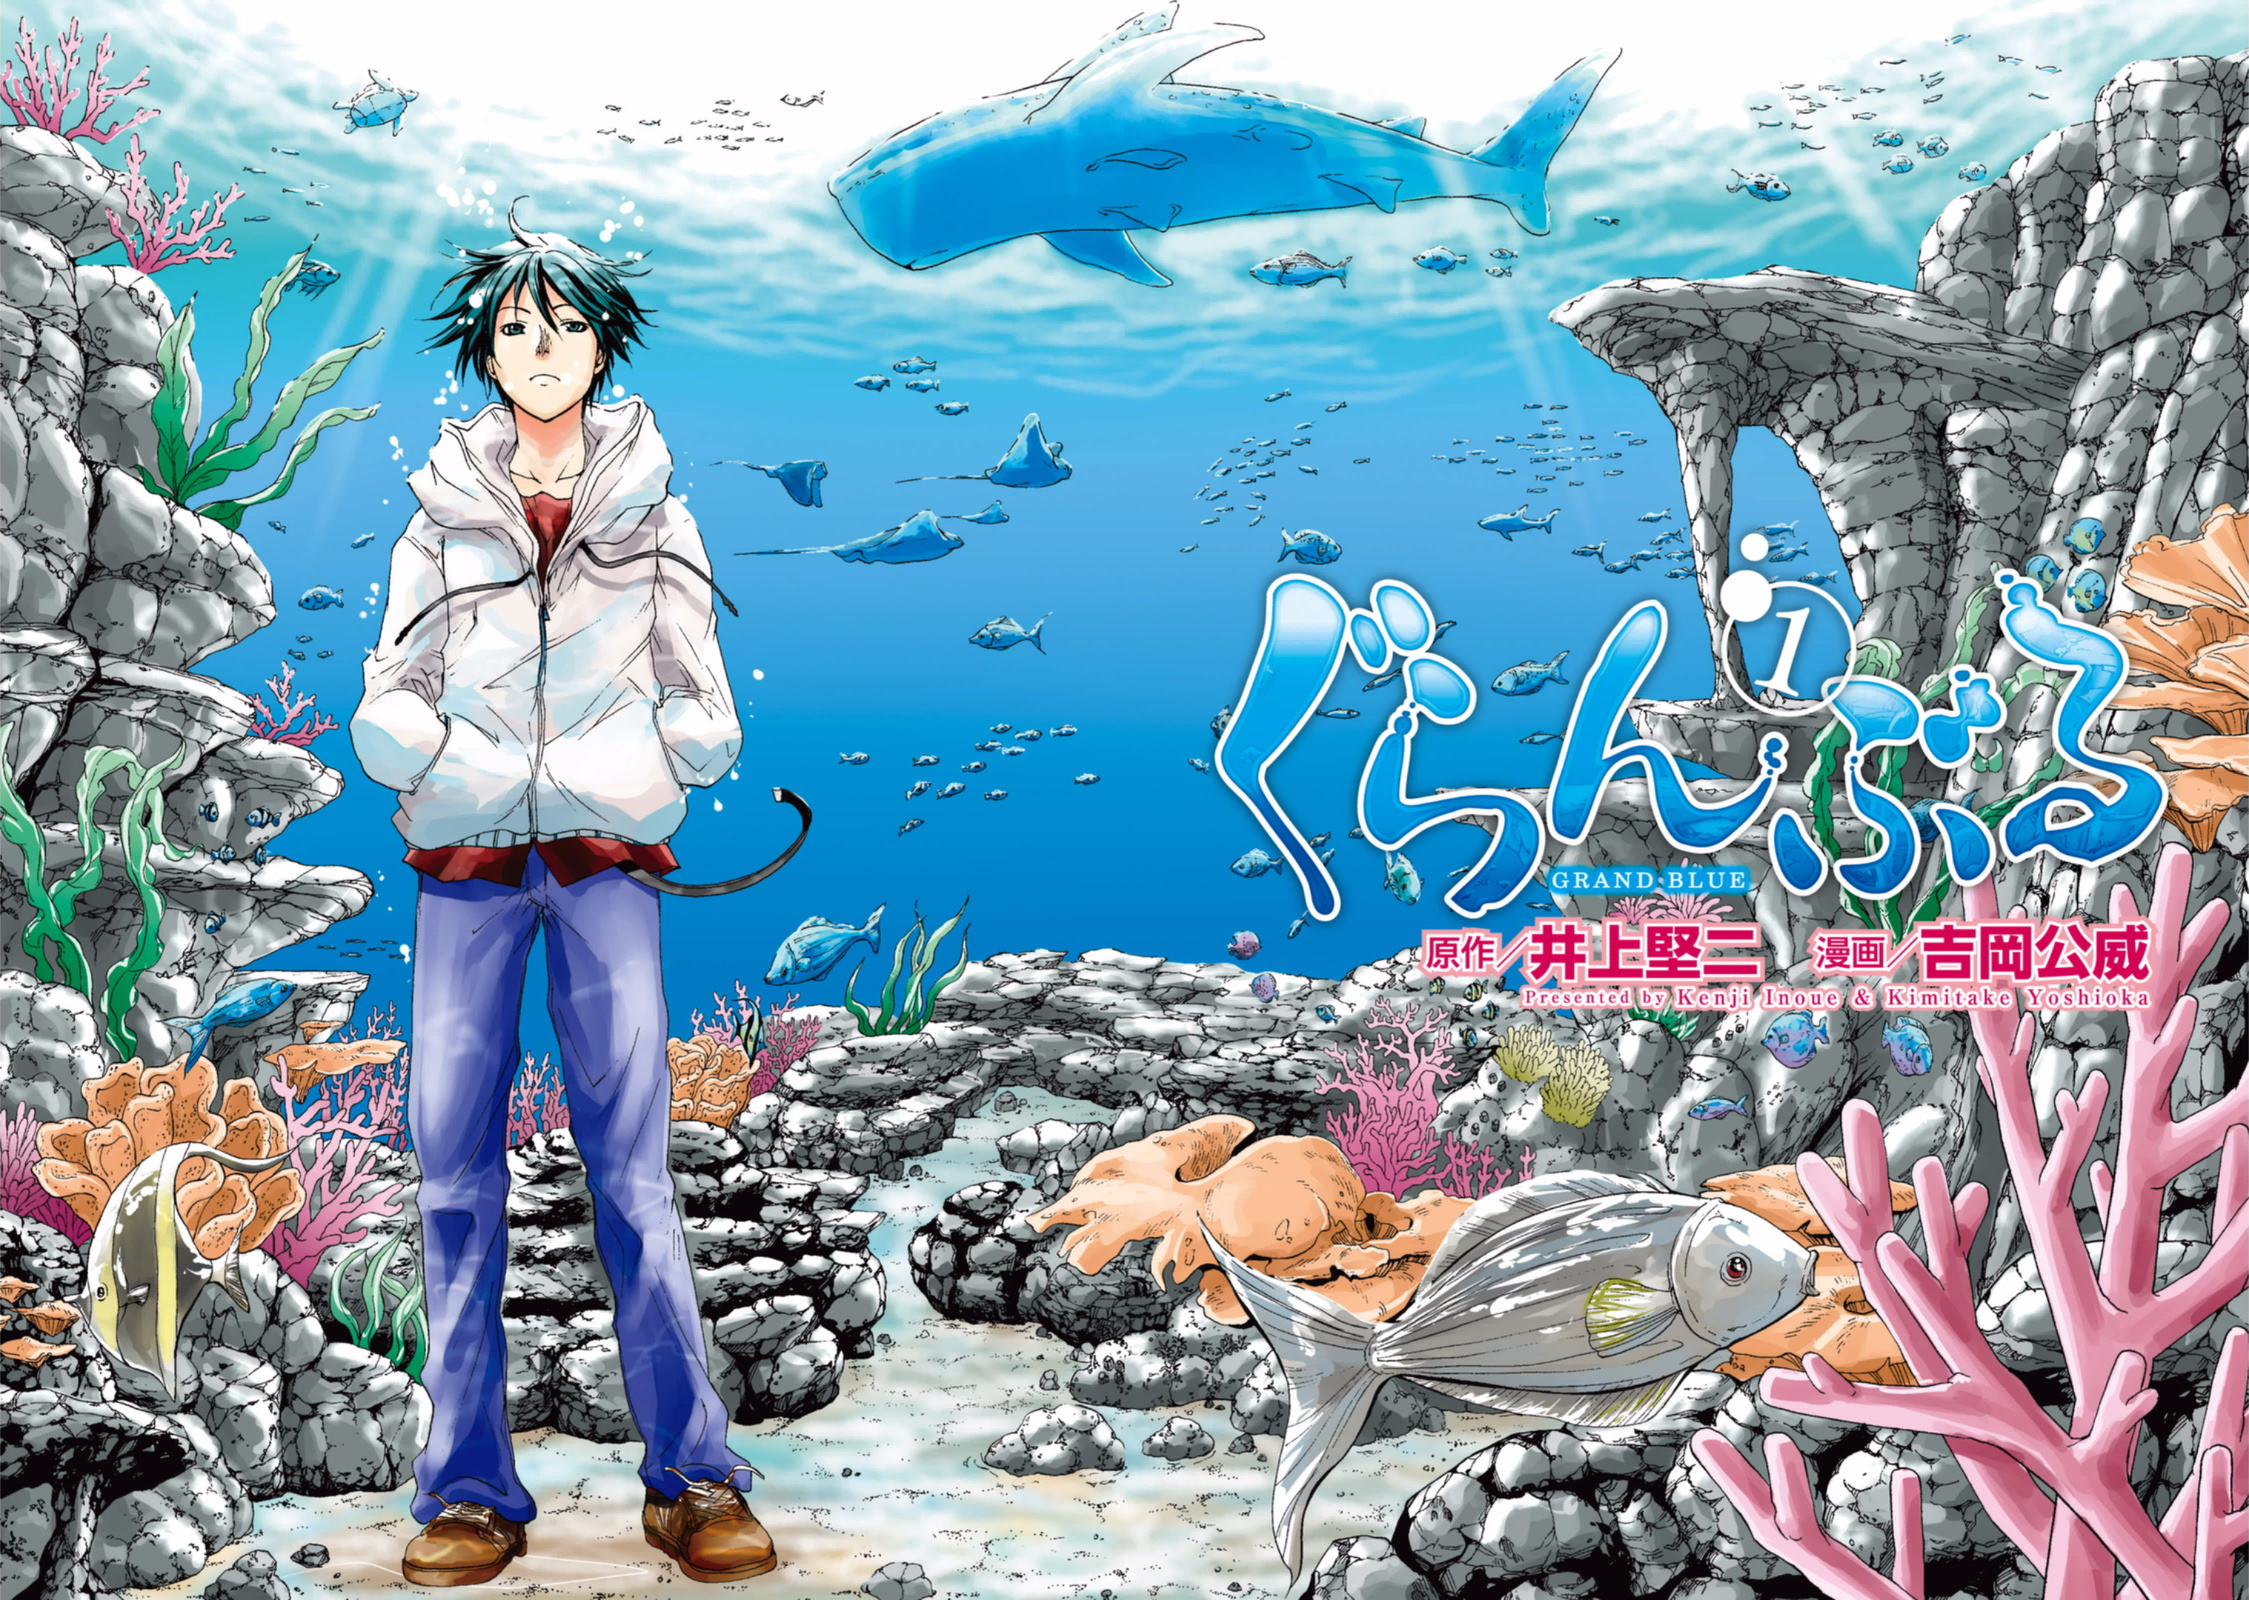 Featured image for Is Grand Blue Worth Watching?